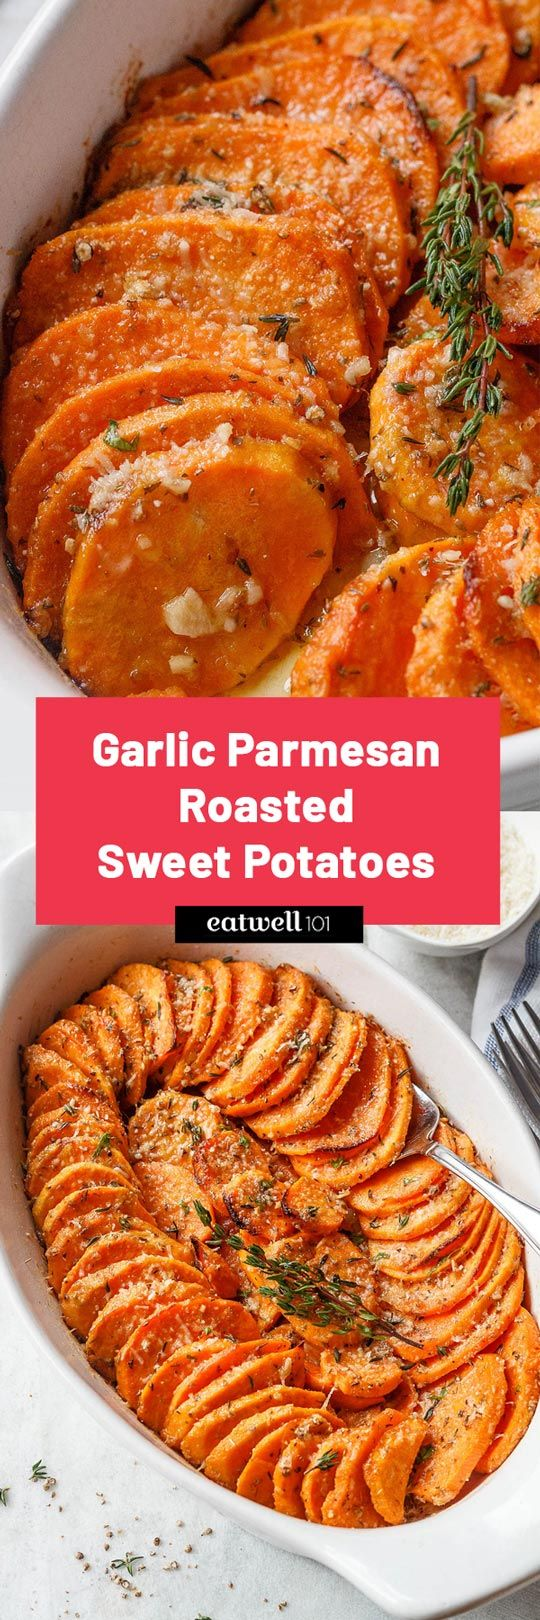 f9b8375e1ac82c855e2fca64dc7be806 Garlic Parmesan Roasted Sweet Potatoes   Tender, extra flavorful flavorful and e...